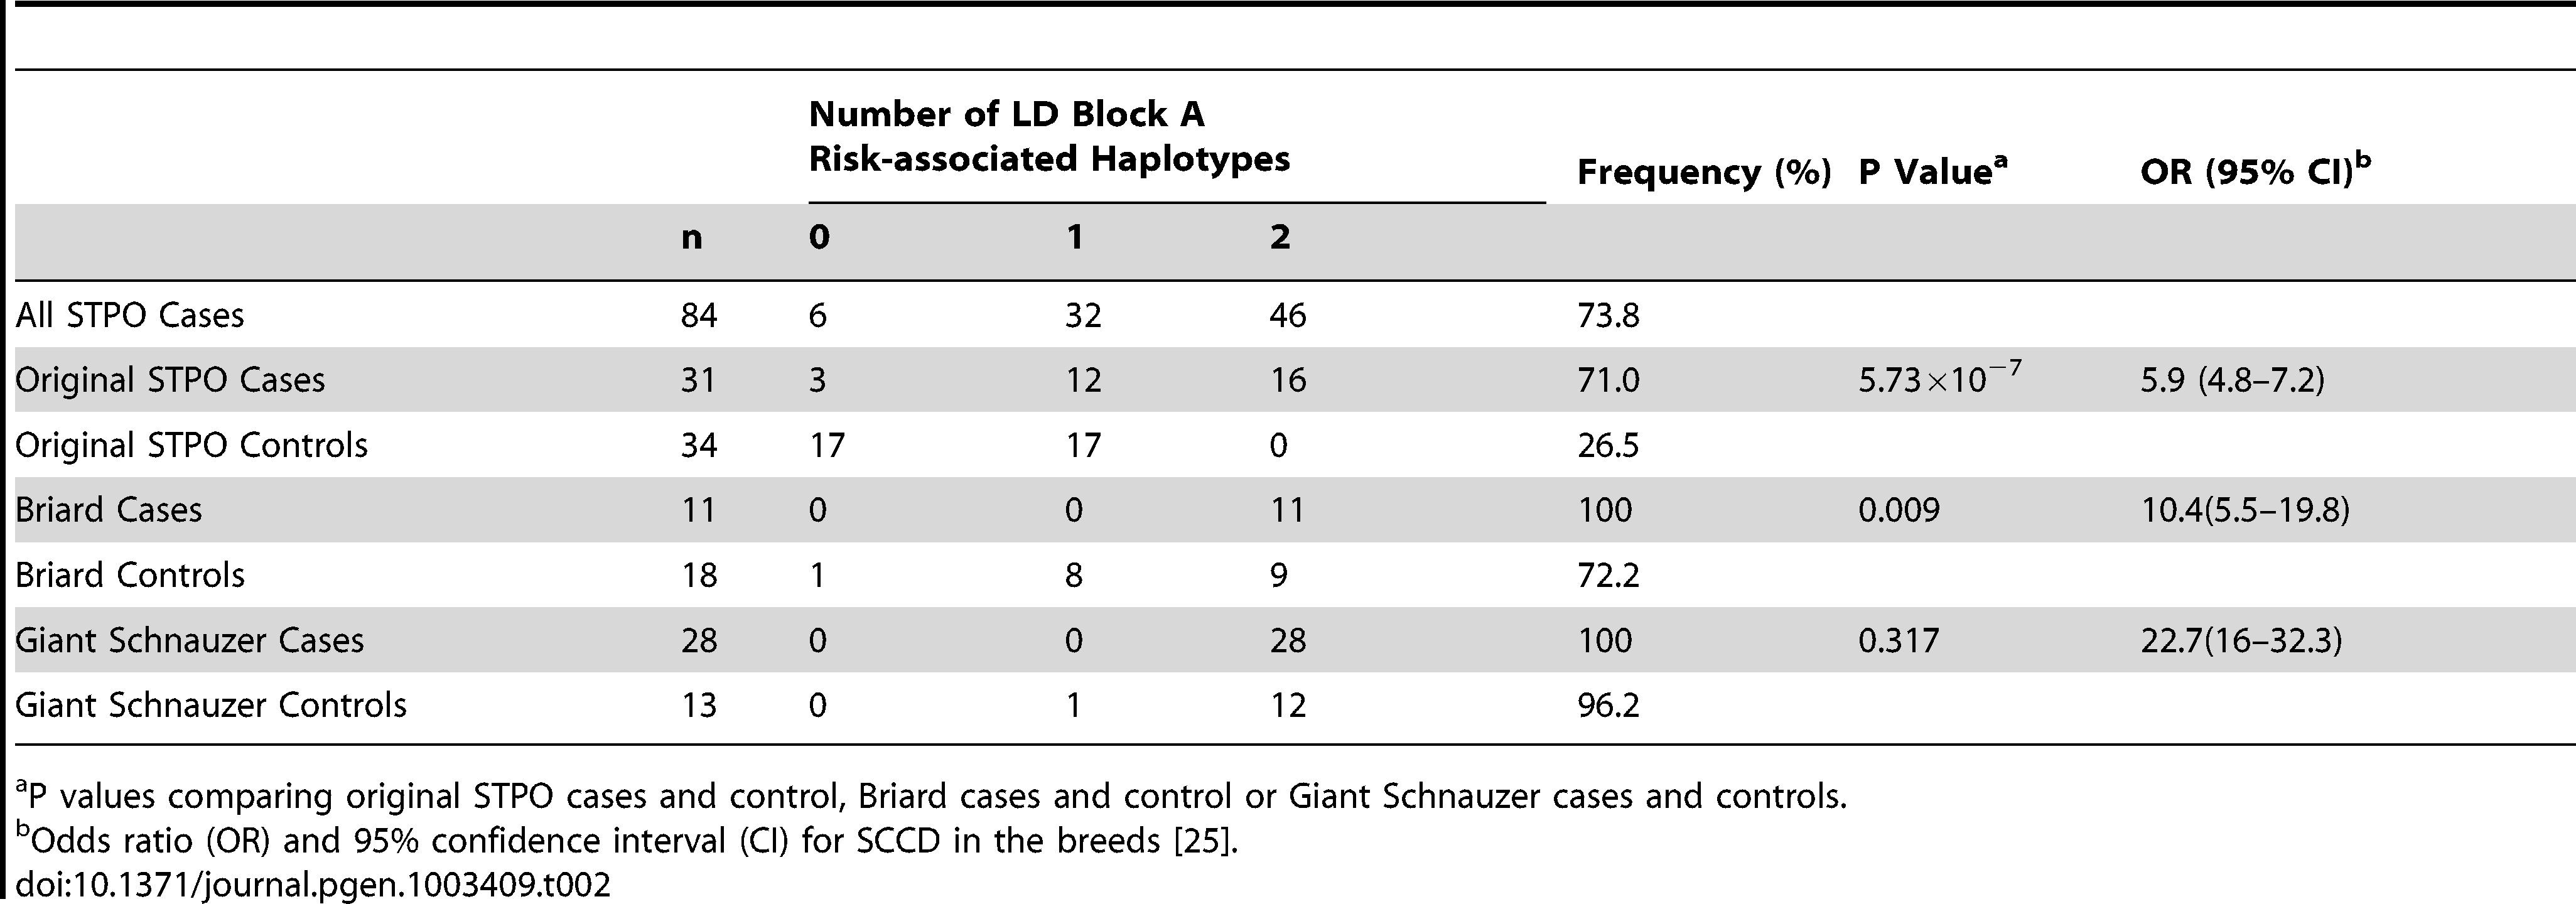 Association between SCCD risk and the LD block A risk-associated haplotype in the STPO, Briard, and Giant Schnauzer cases and controls.